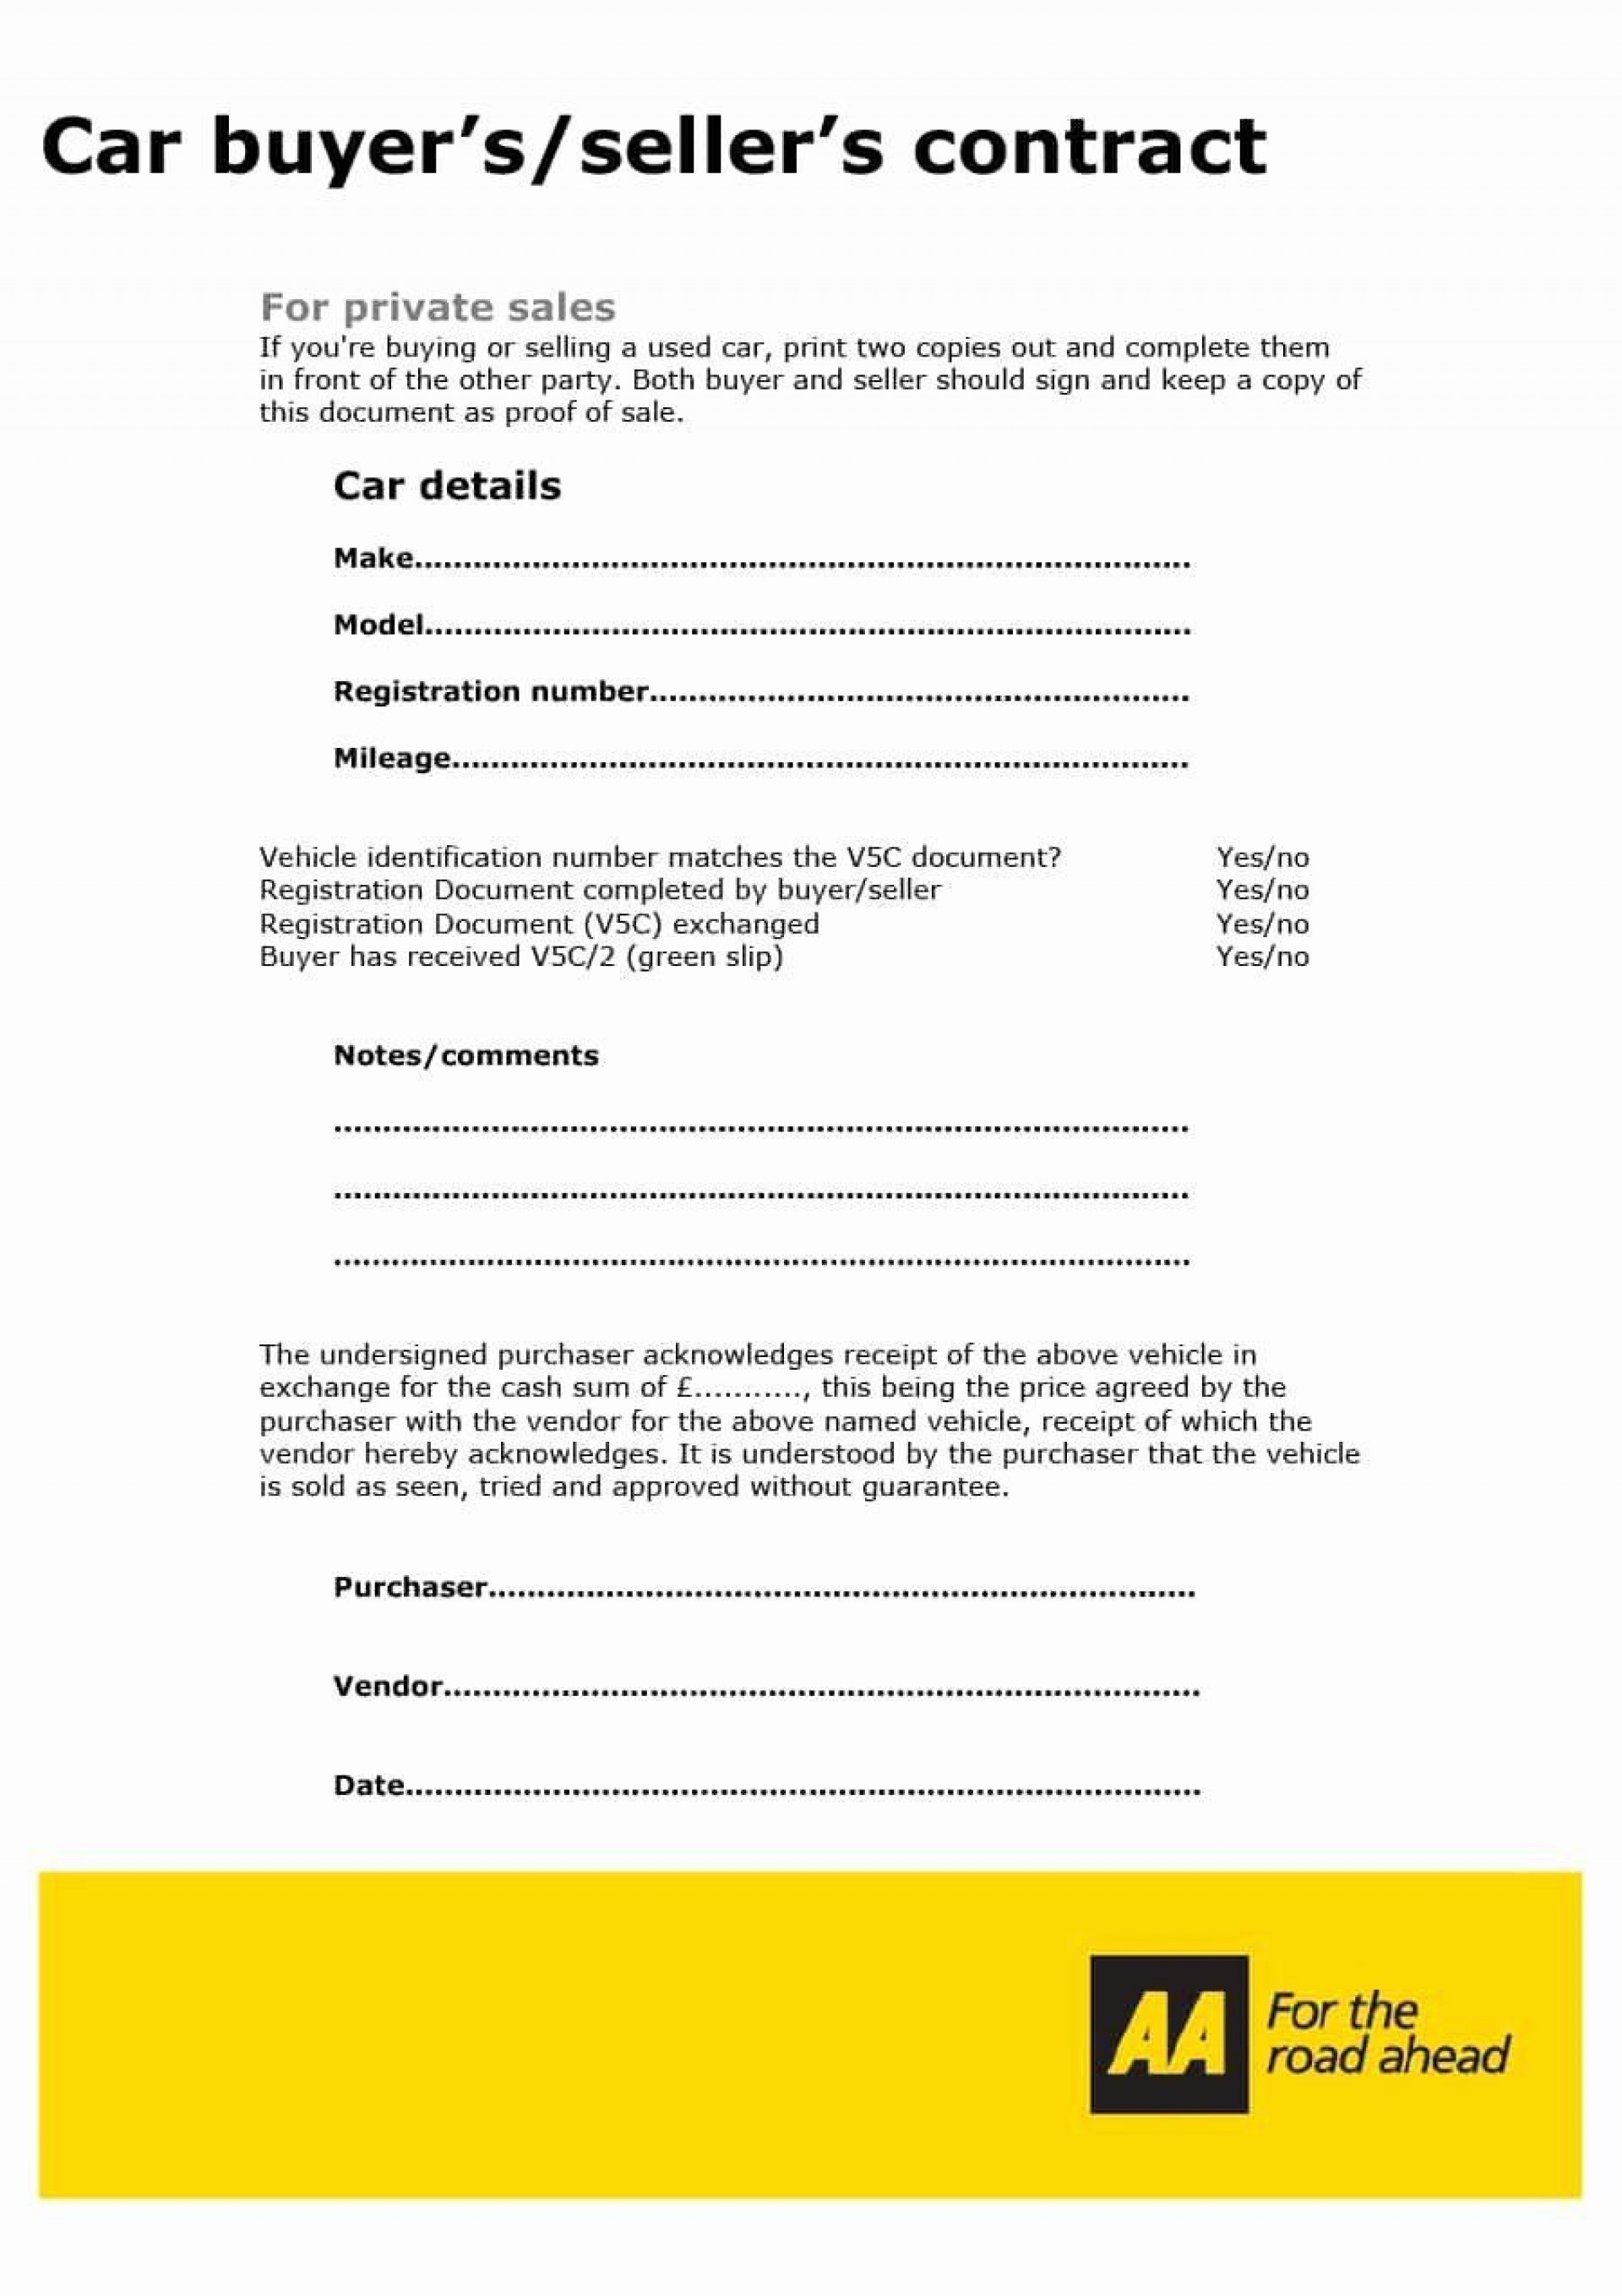 001 Simple Car Rental Agreement Template South Africa High Def  Vehicle Rent To Own1920